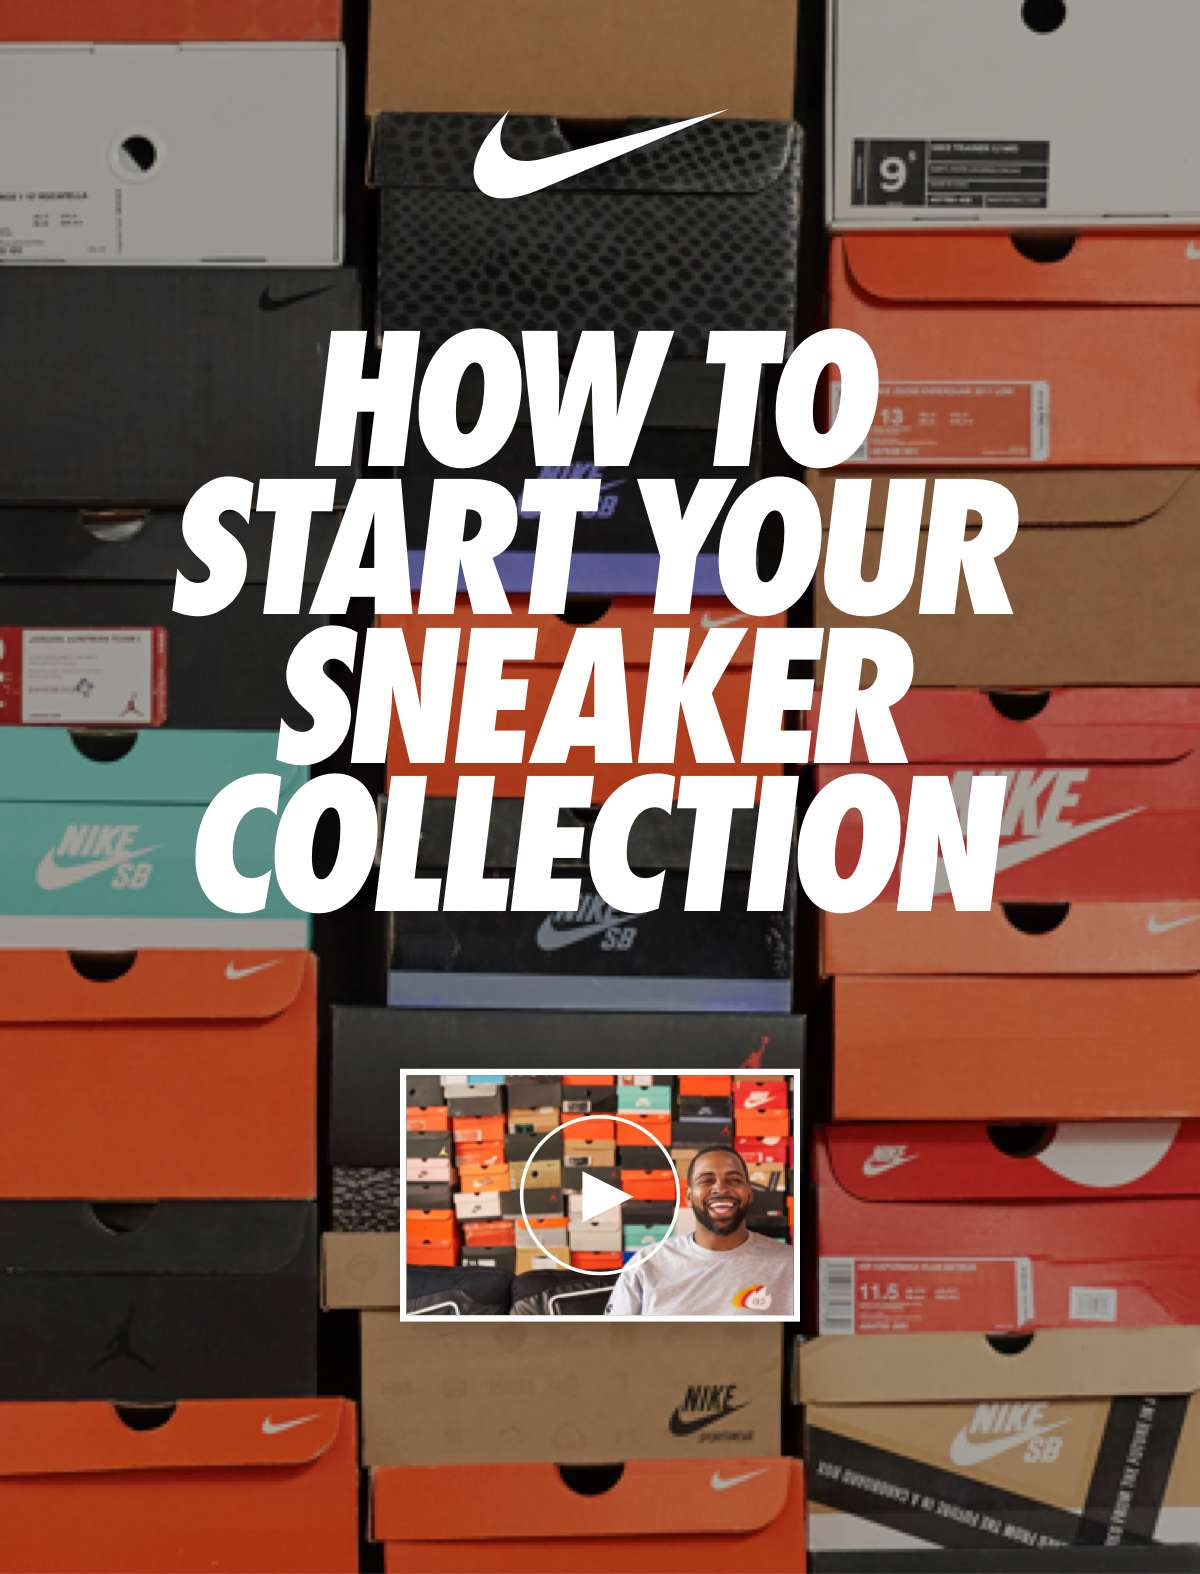 NIKE | HOW TO START YOUR SNEAKER COLLECTION